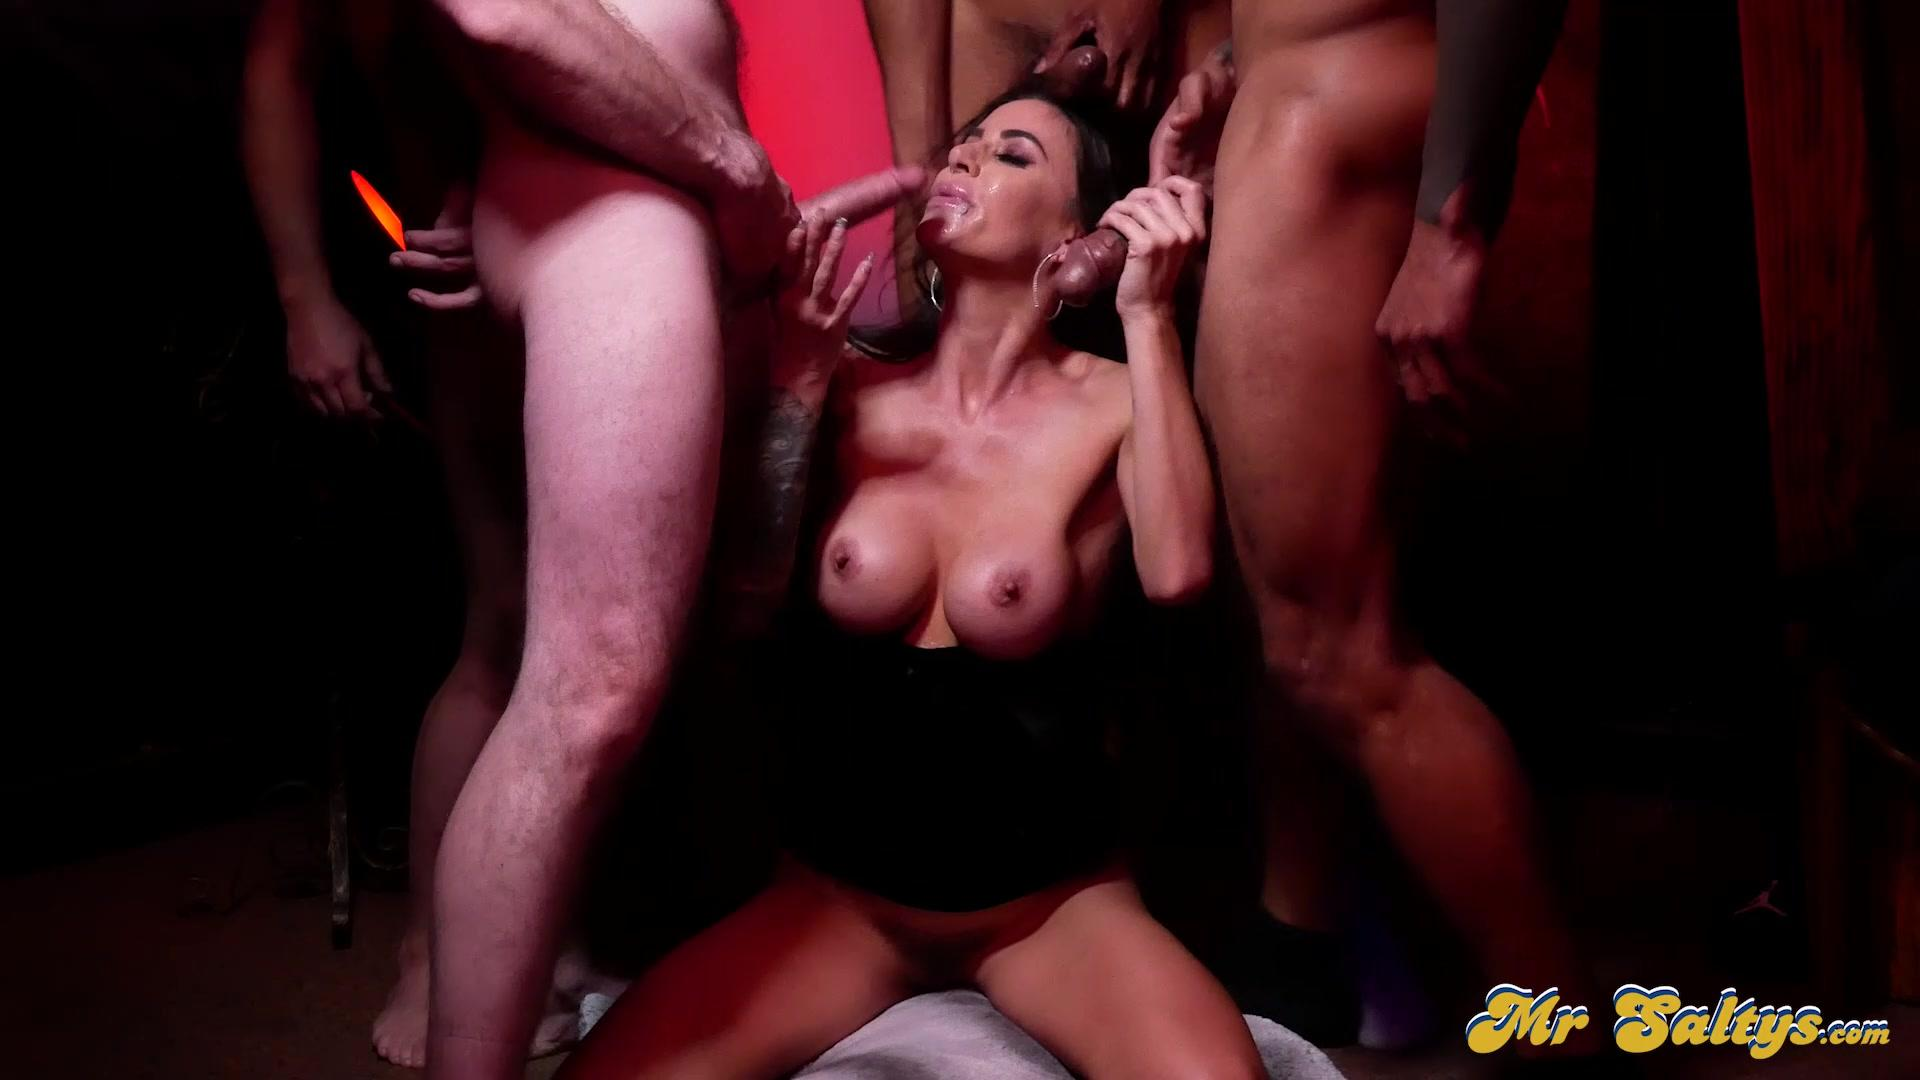 Aziani – Gia Dimarco Hotwife Explores Swingers Club Ends Up On Her Knees